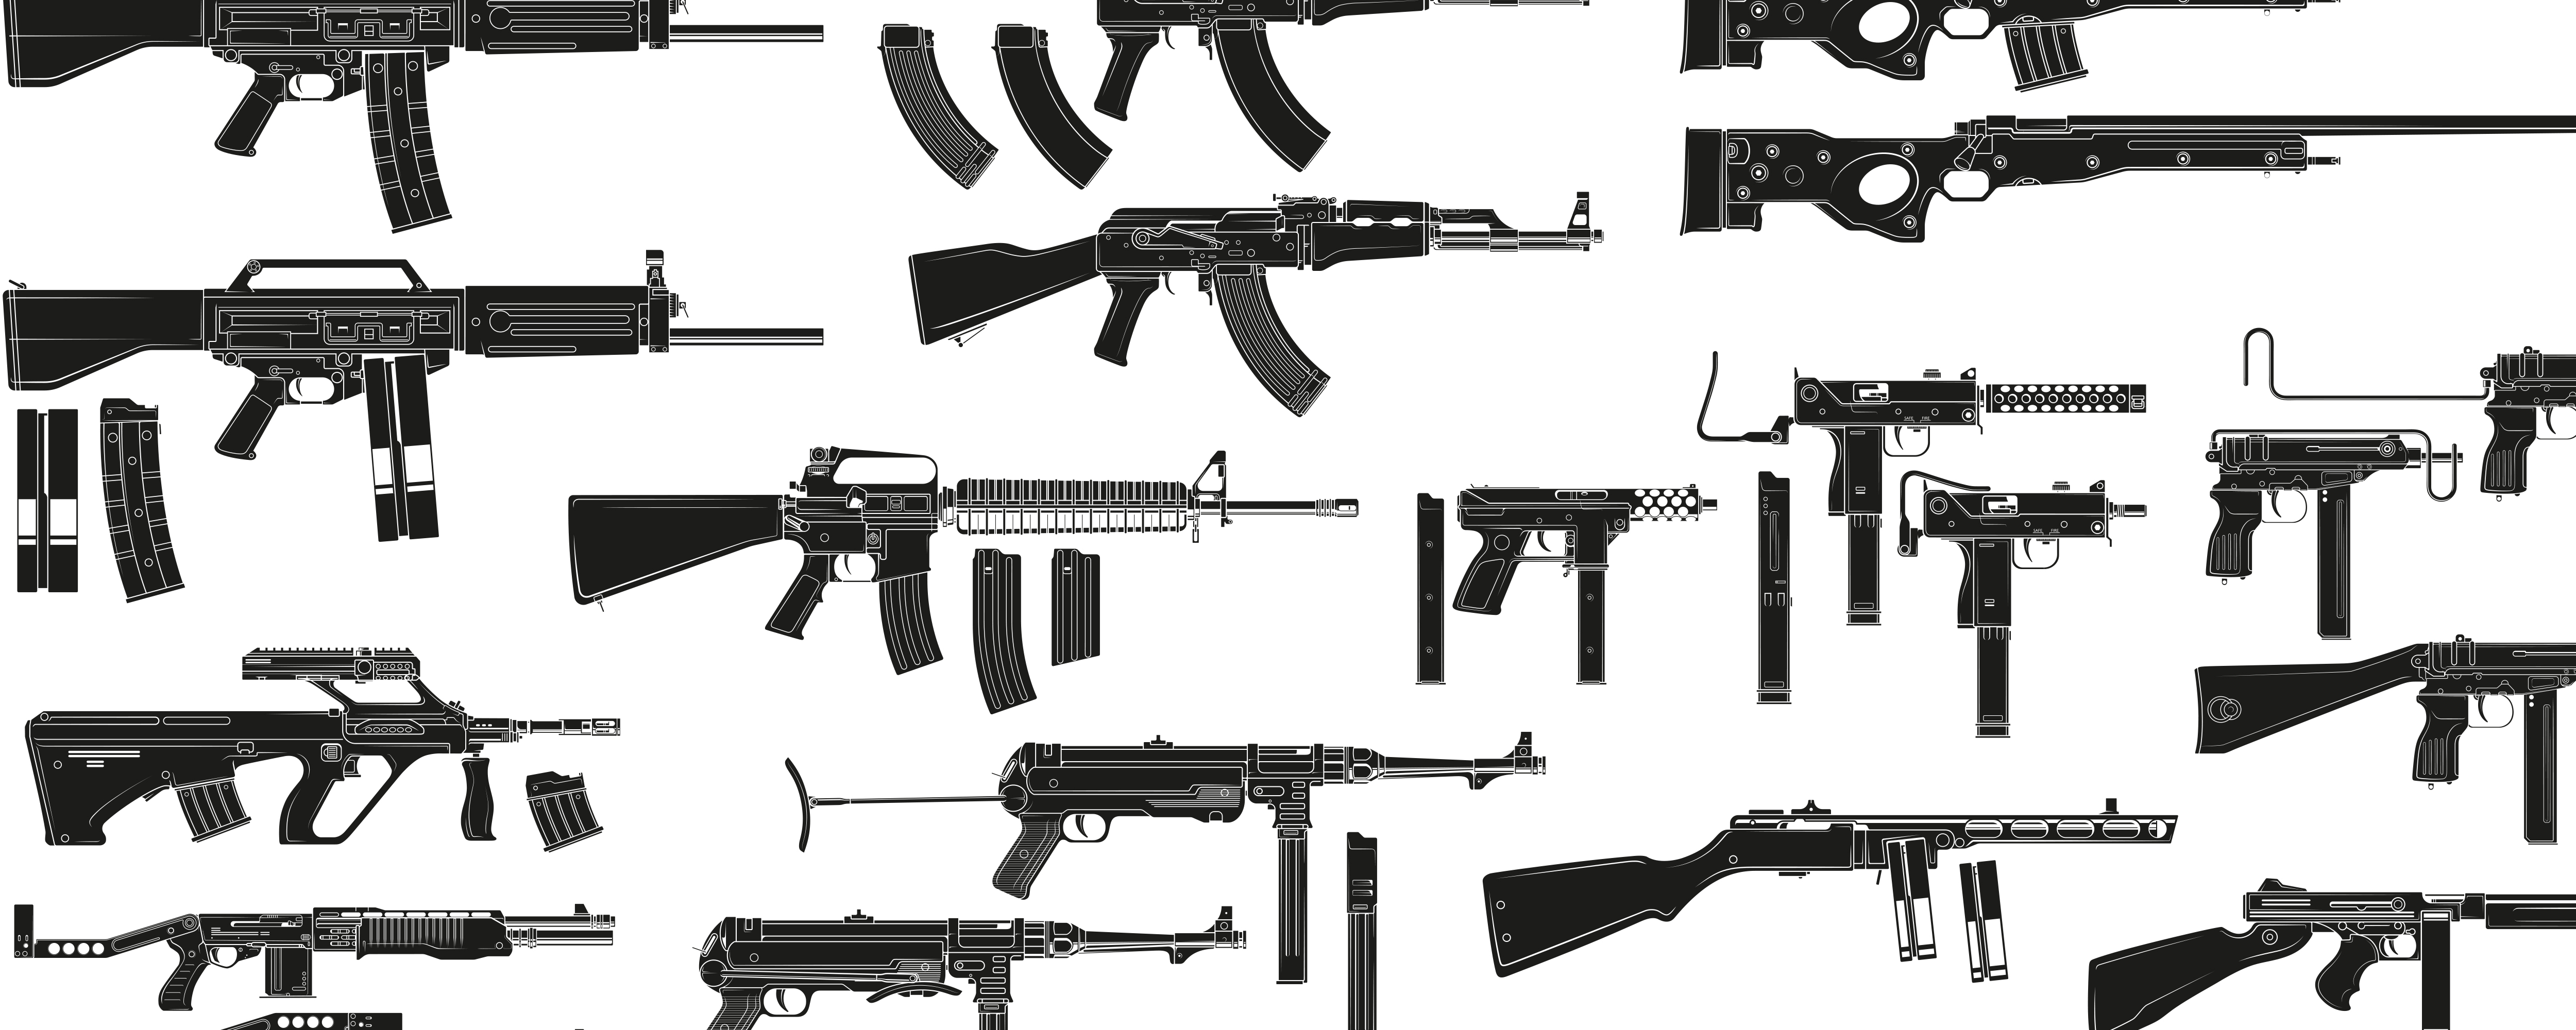 How Common Are Mass Shootings The Nature And Frequency Of